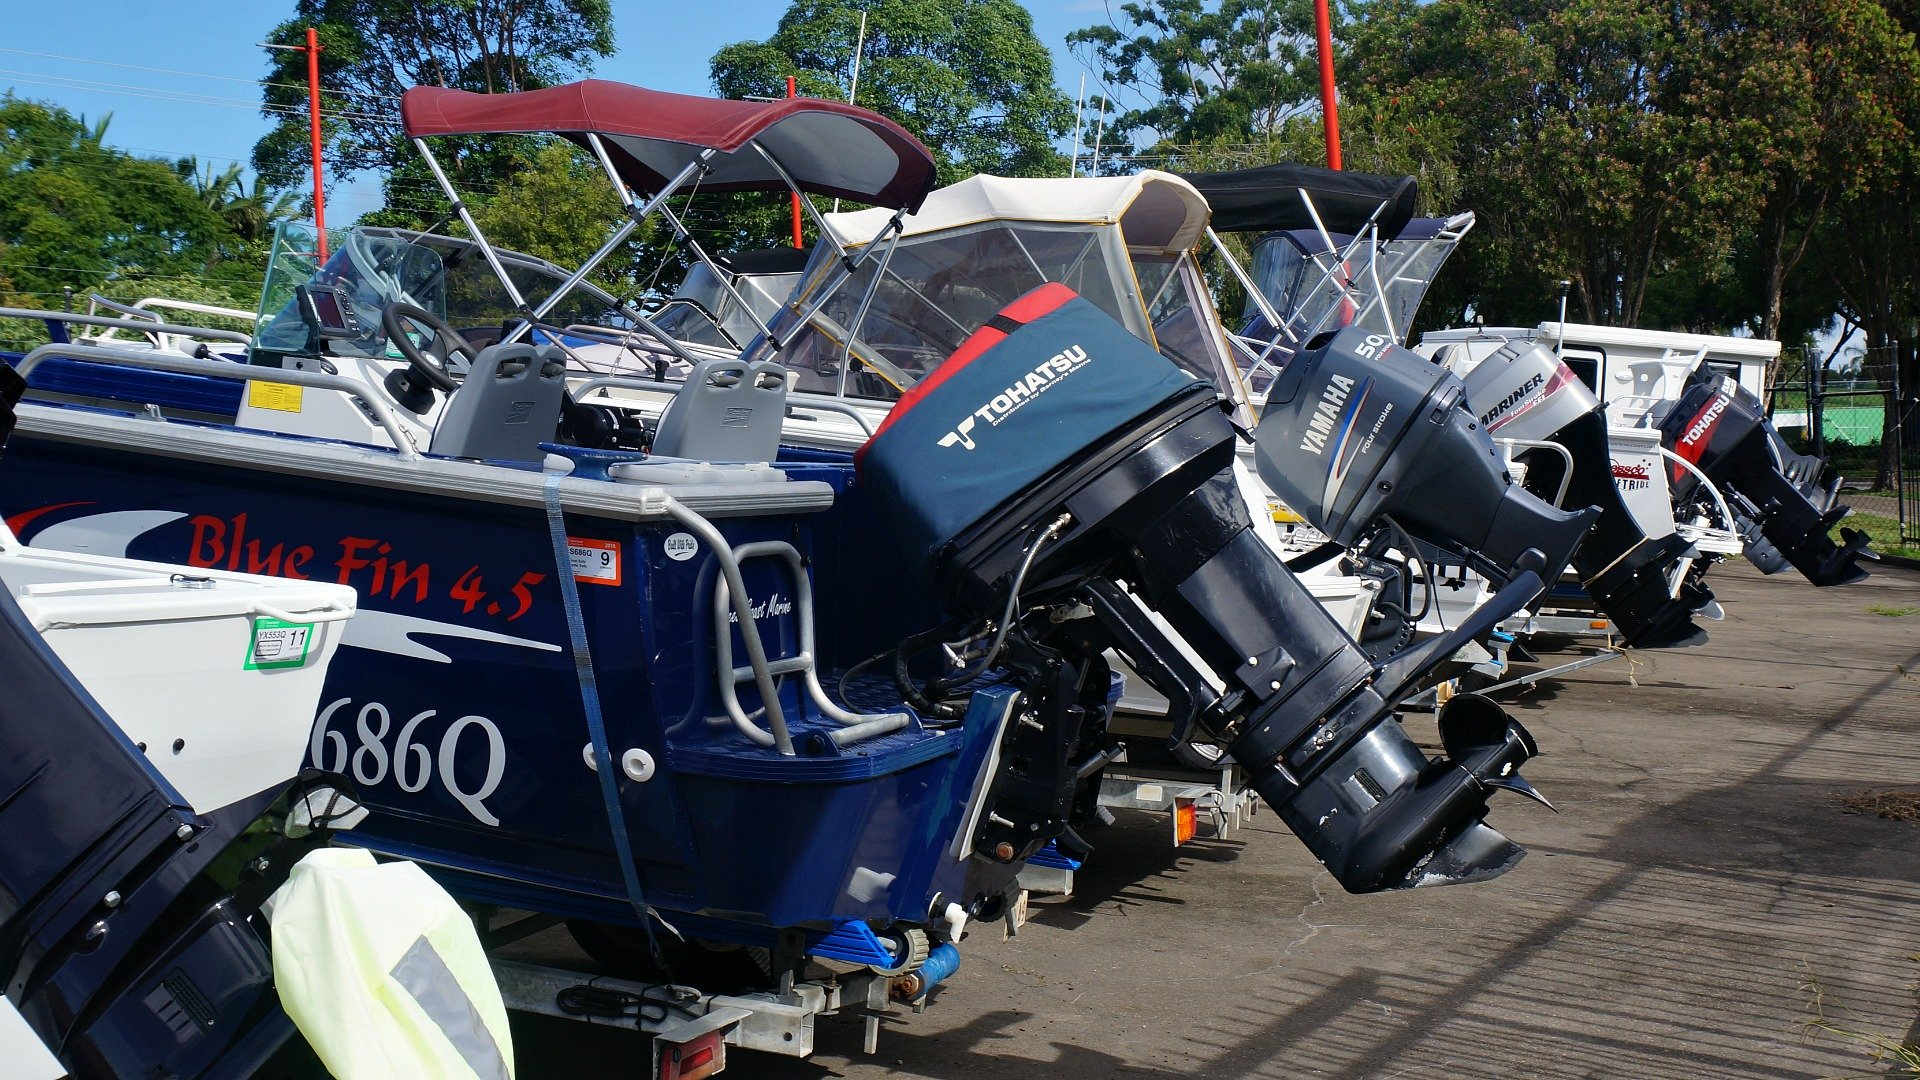 Redcliffe Marine - Boat sales, fishing gear, outboards